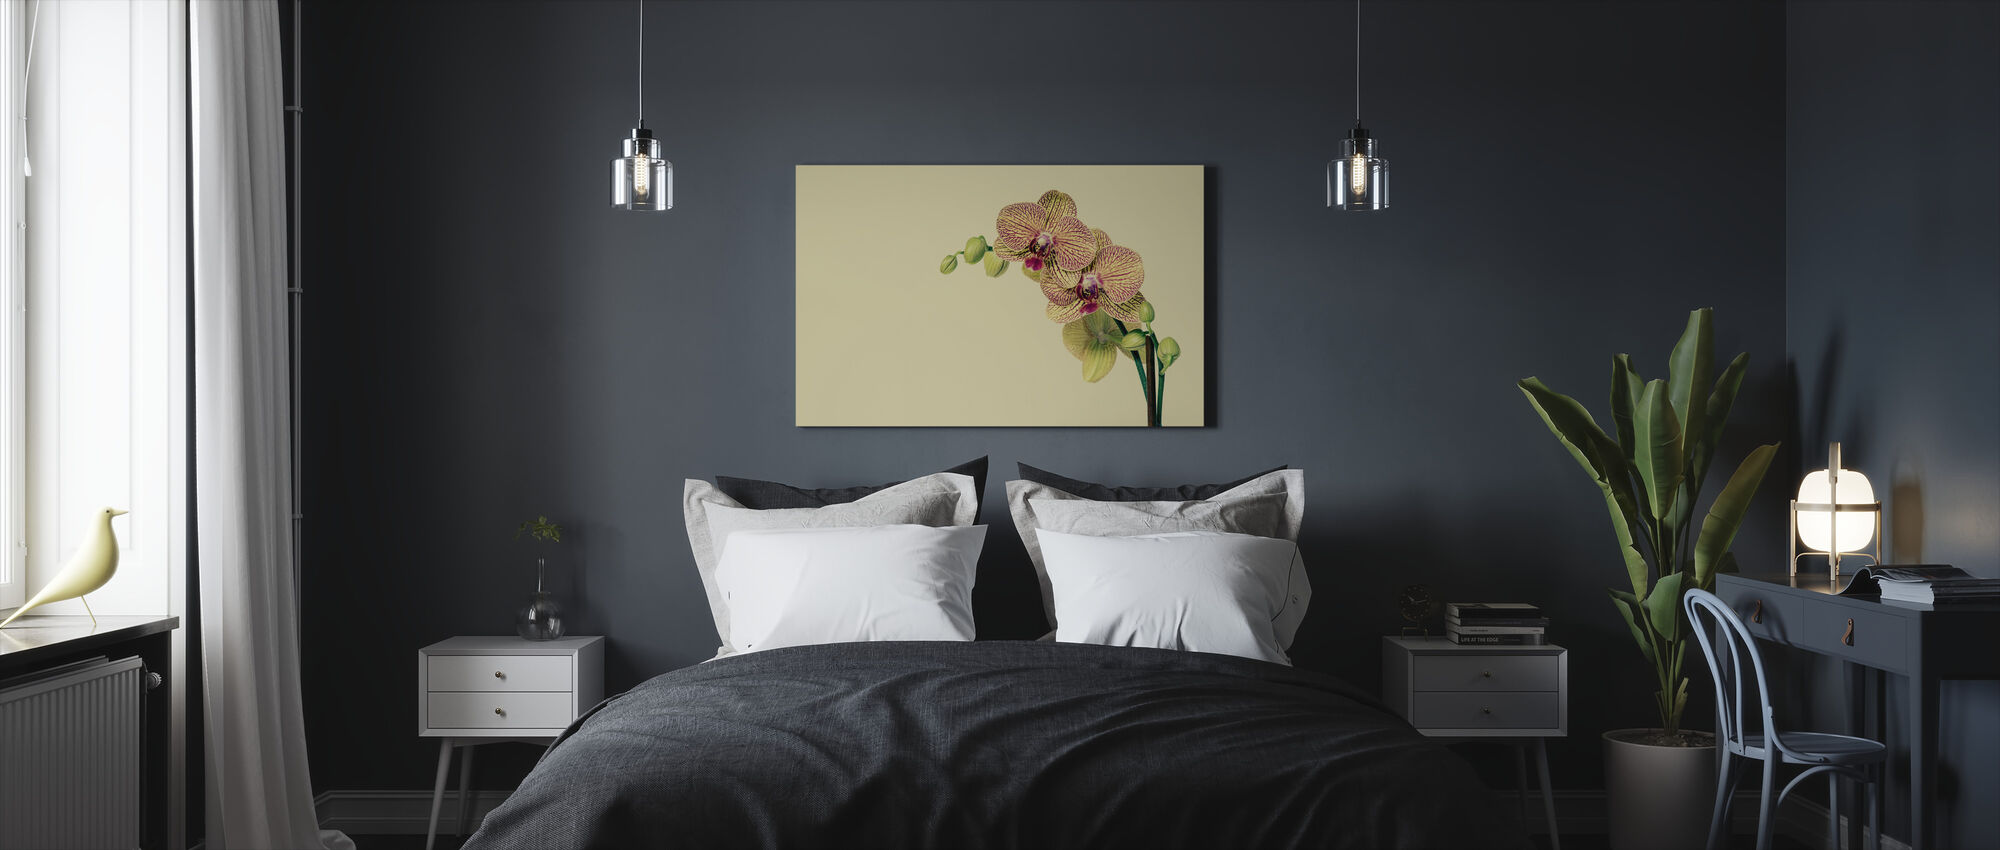 Pale Orchid - Canvas print - Bedroom